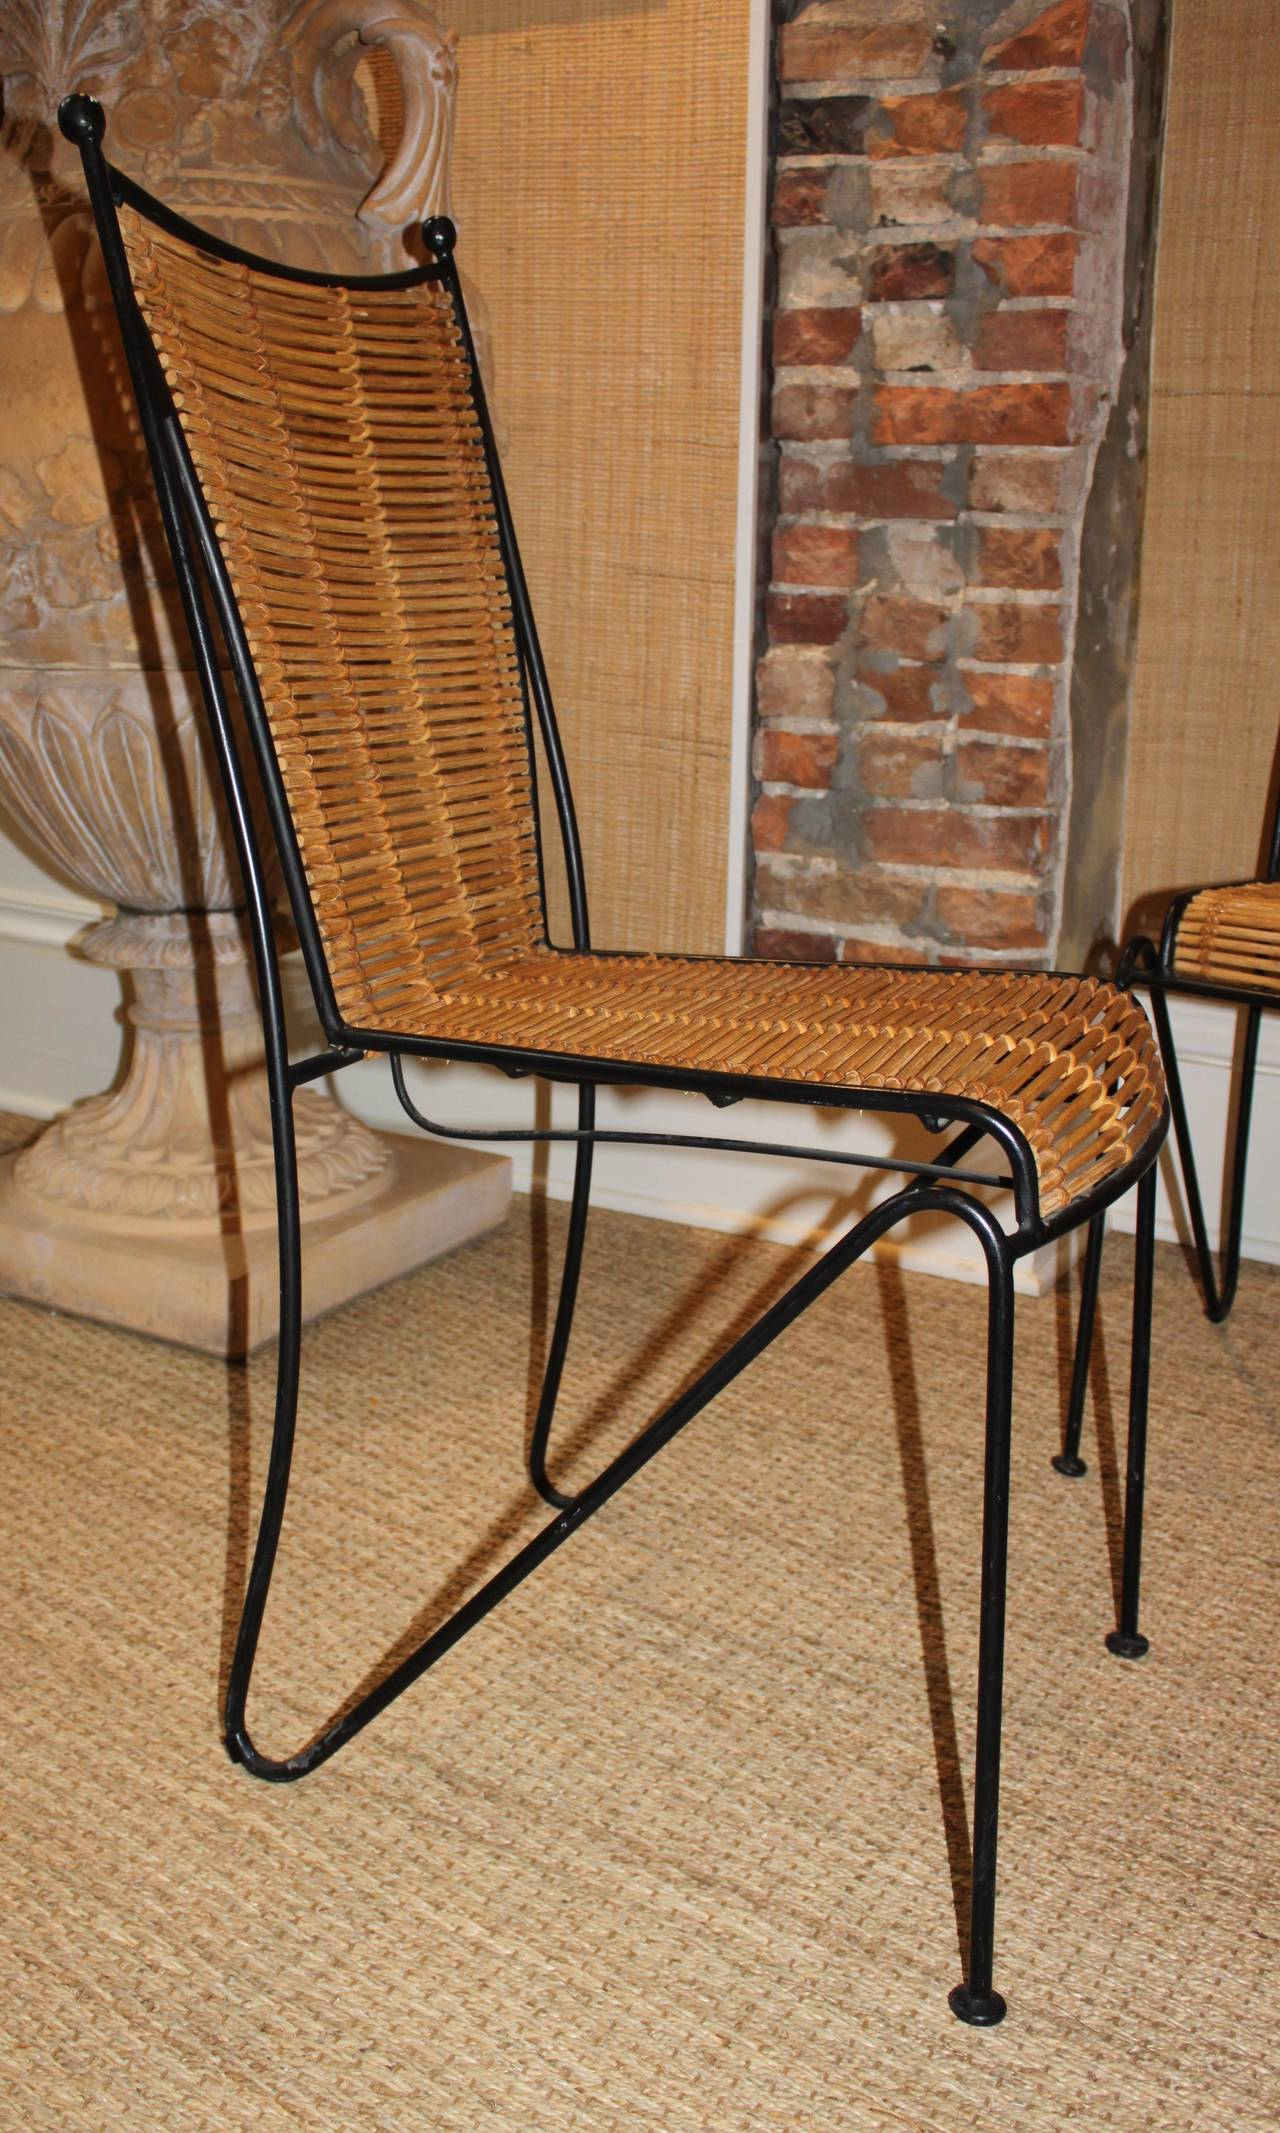 Set of Six Wrought Iron and Bamboo Dining Chairs Attributed to